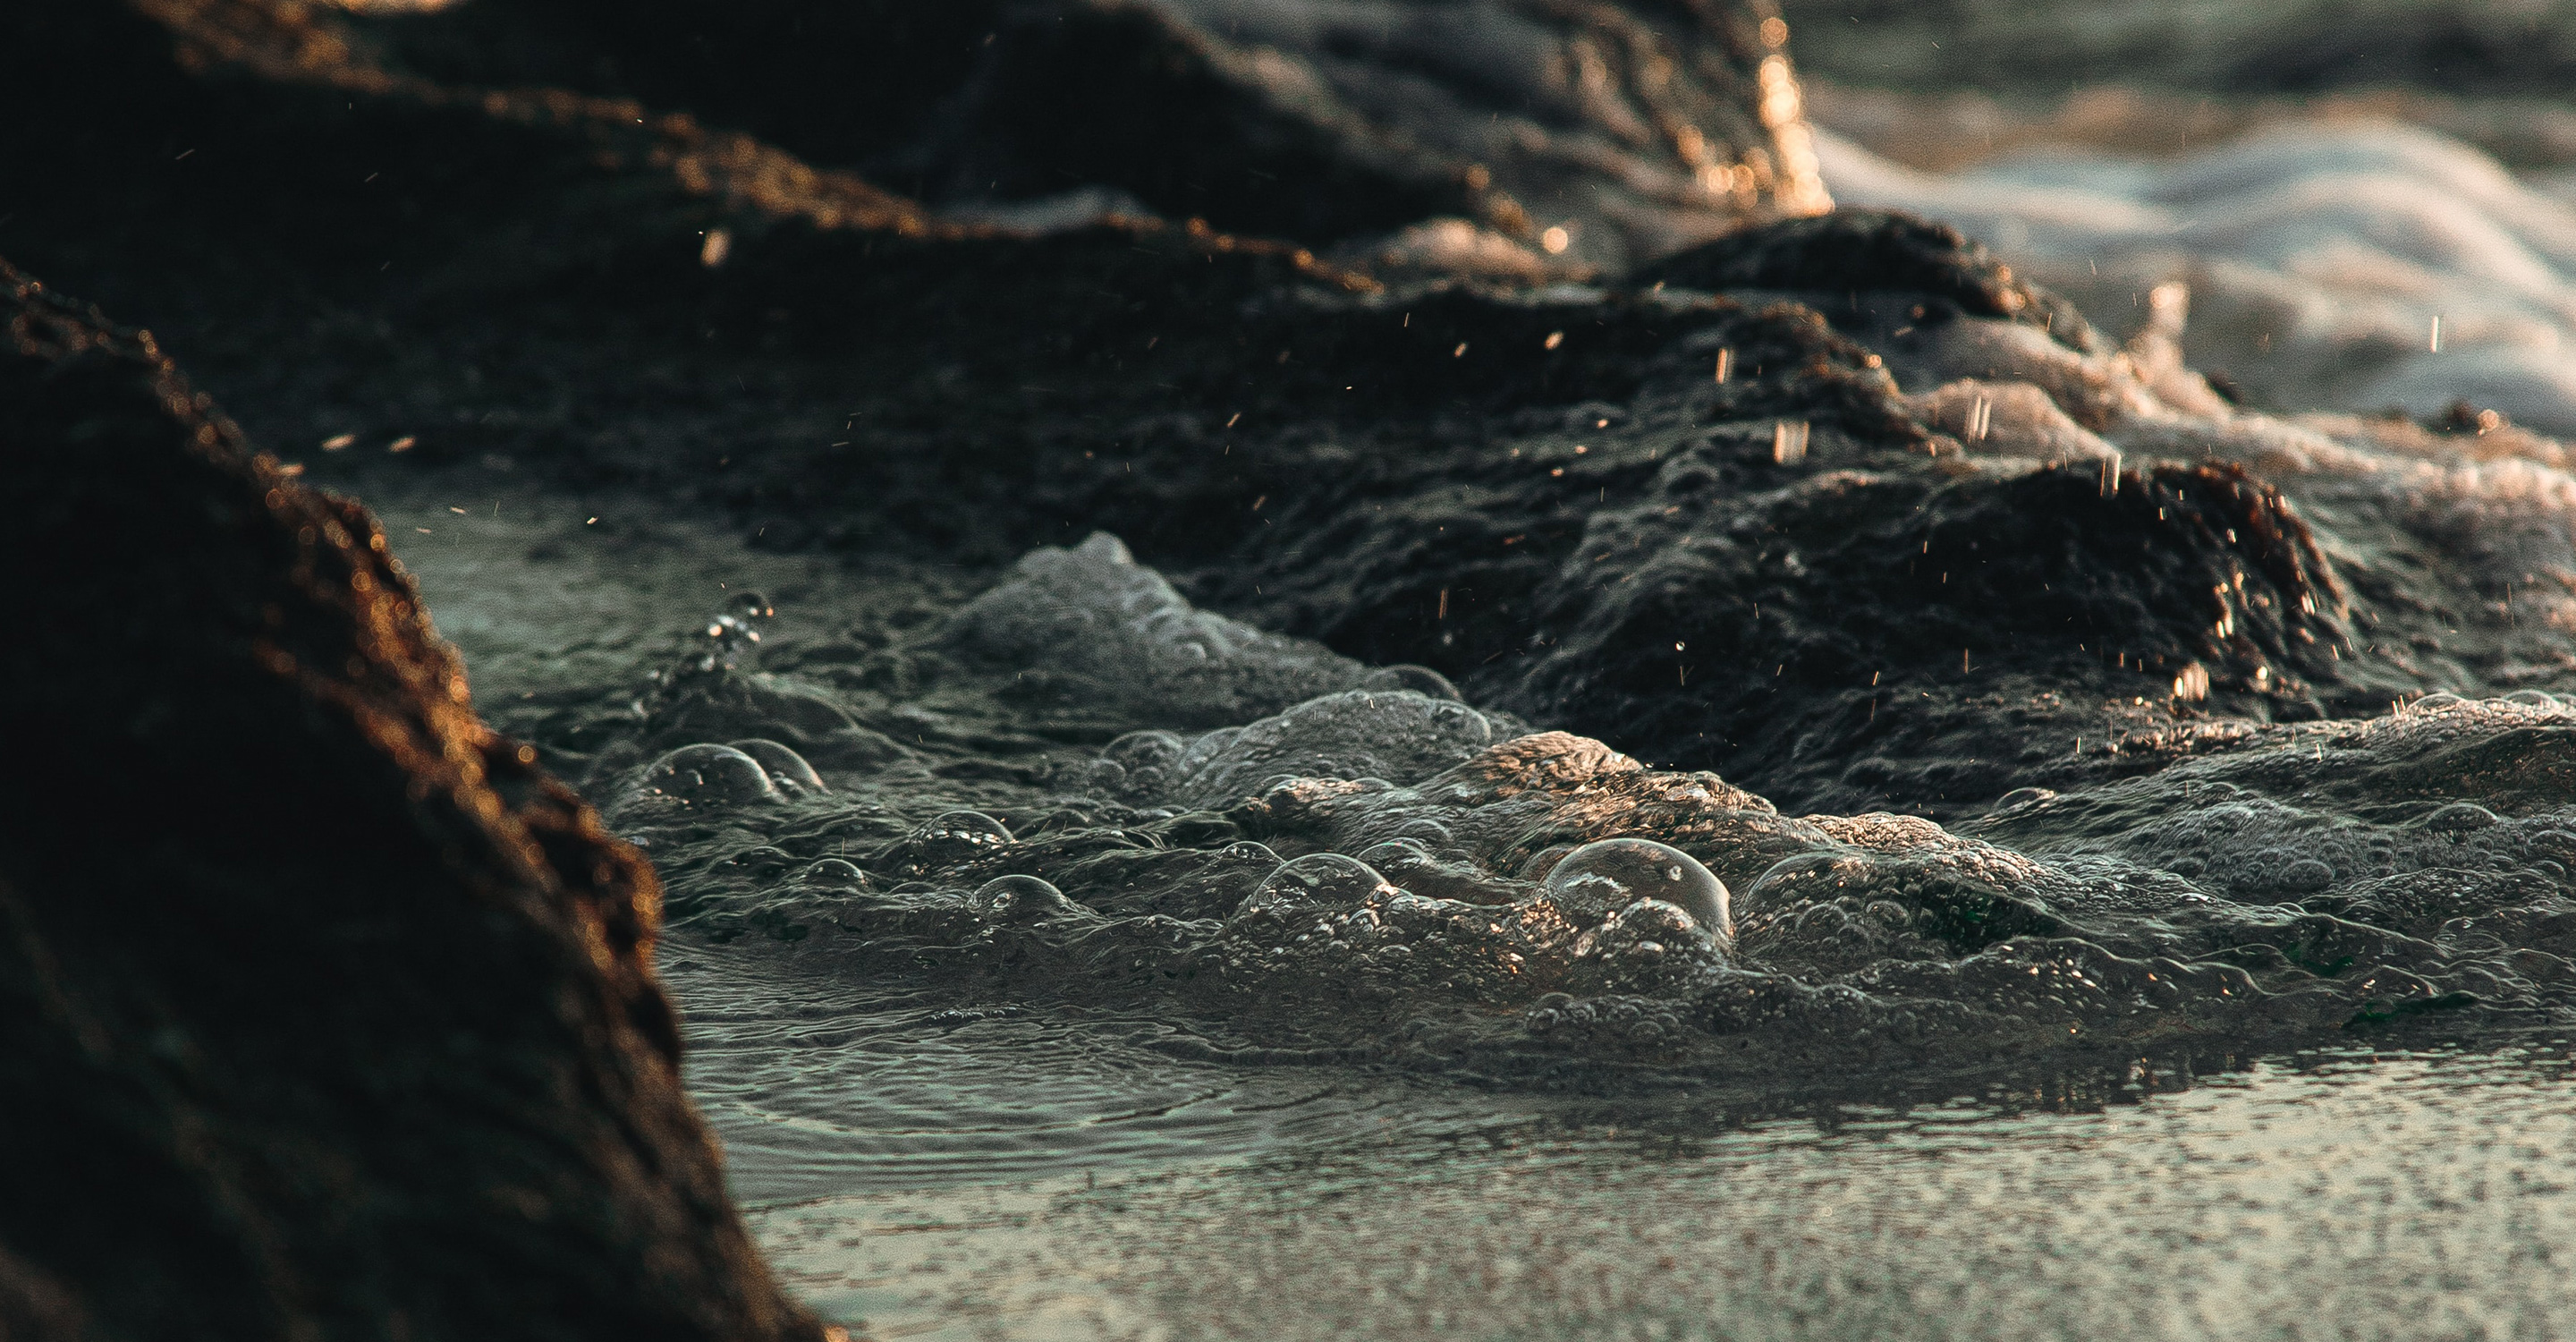 Close-up of water swirling among rocks at the sea's edge.